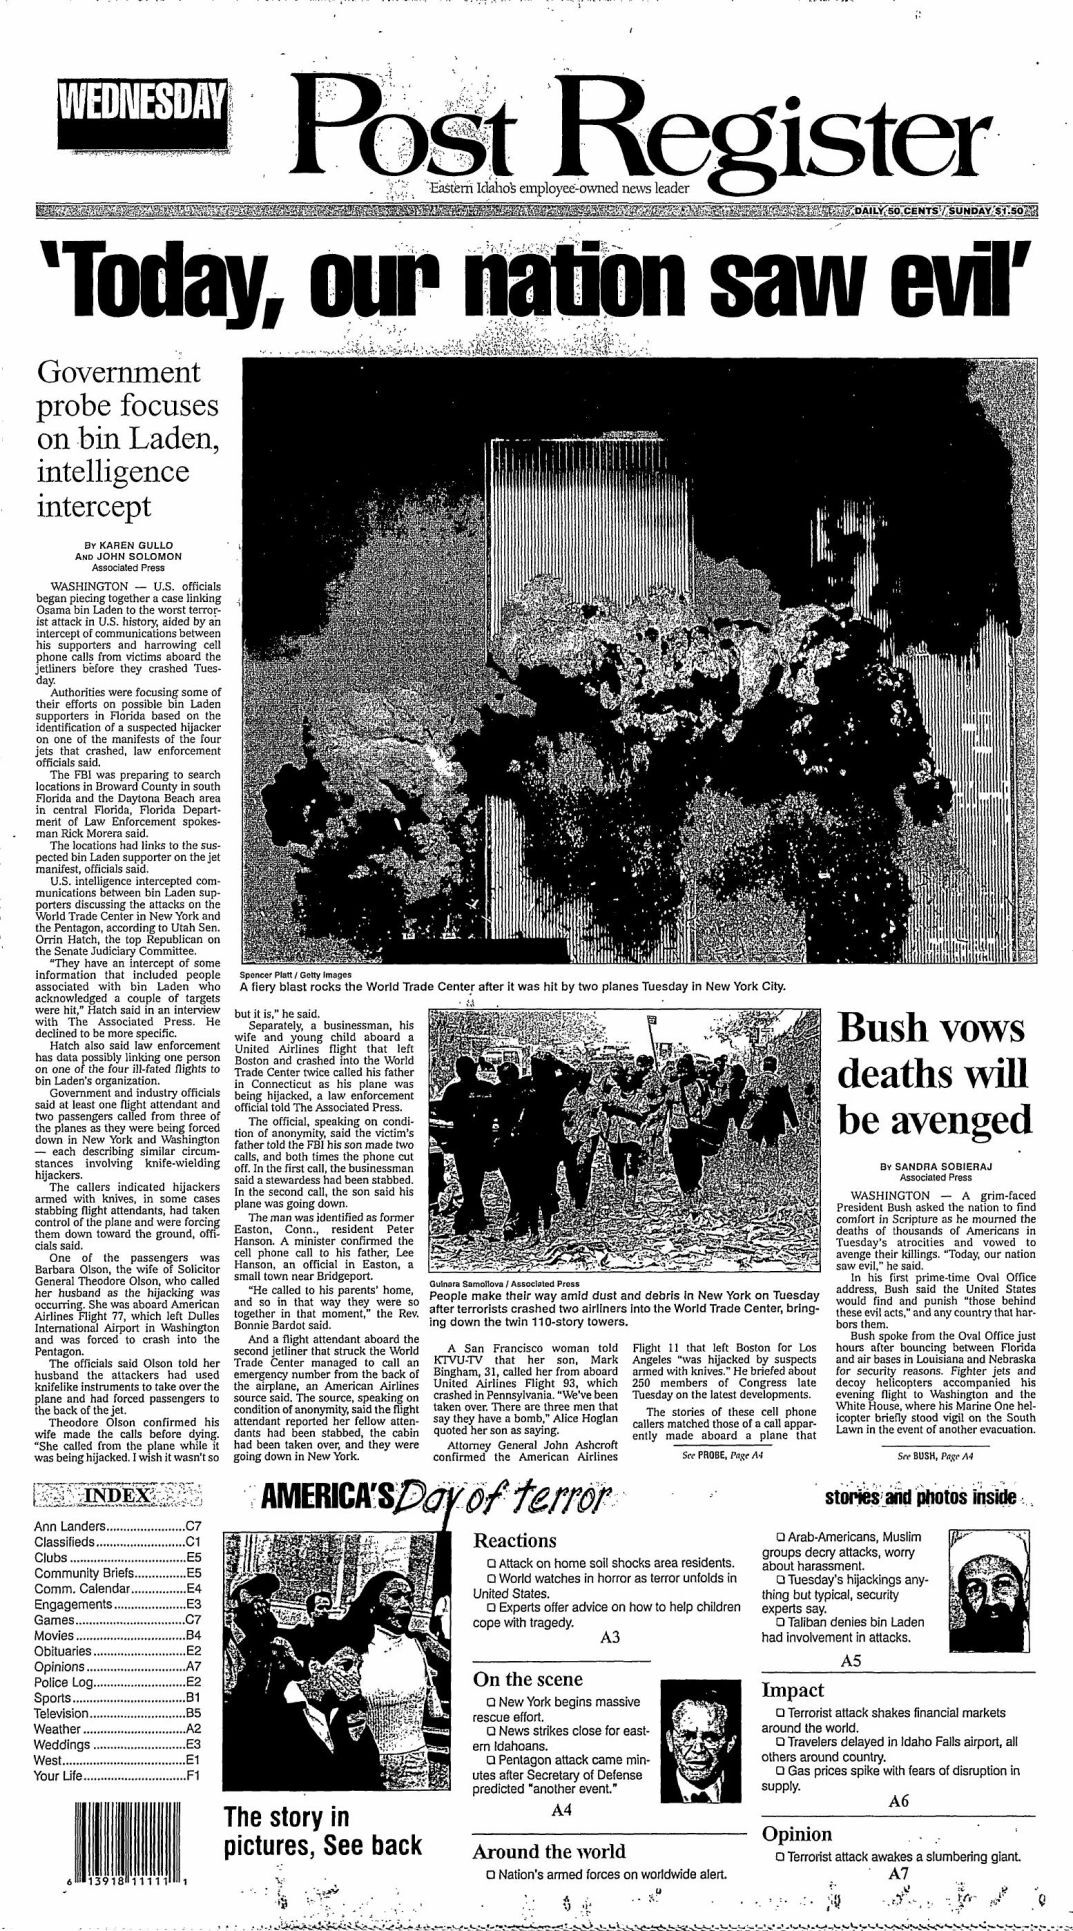 Post Register front page 9/12/01